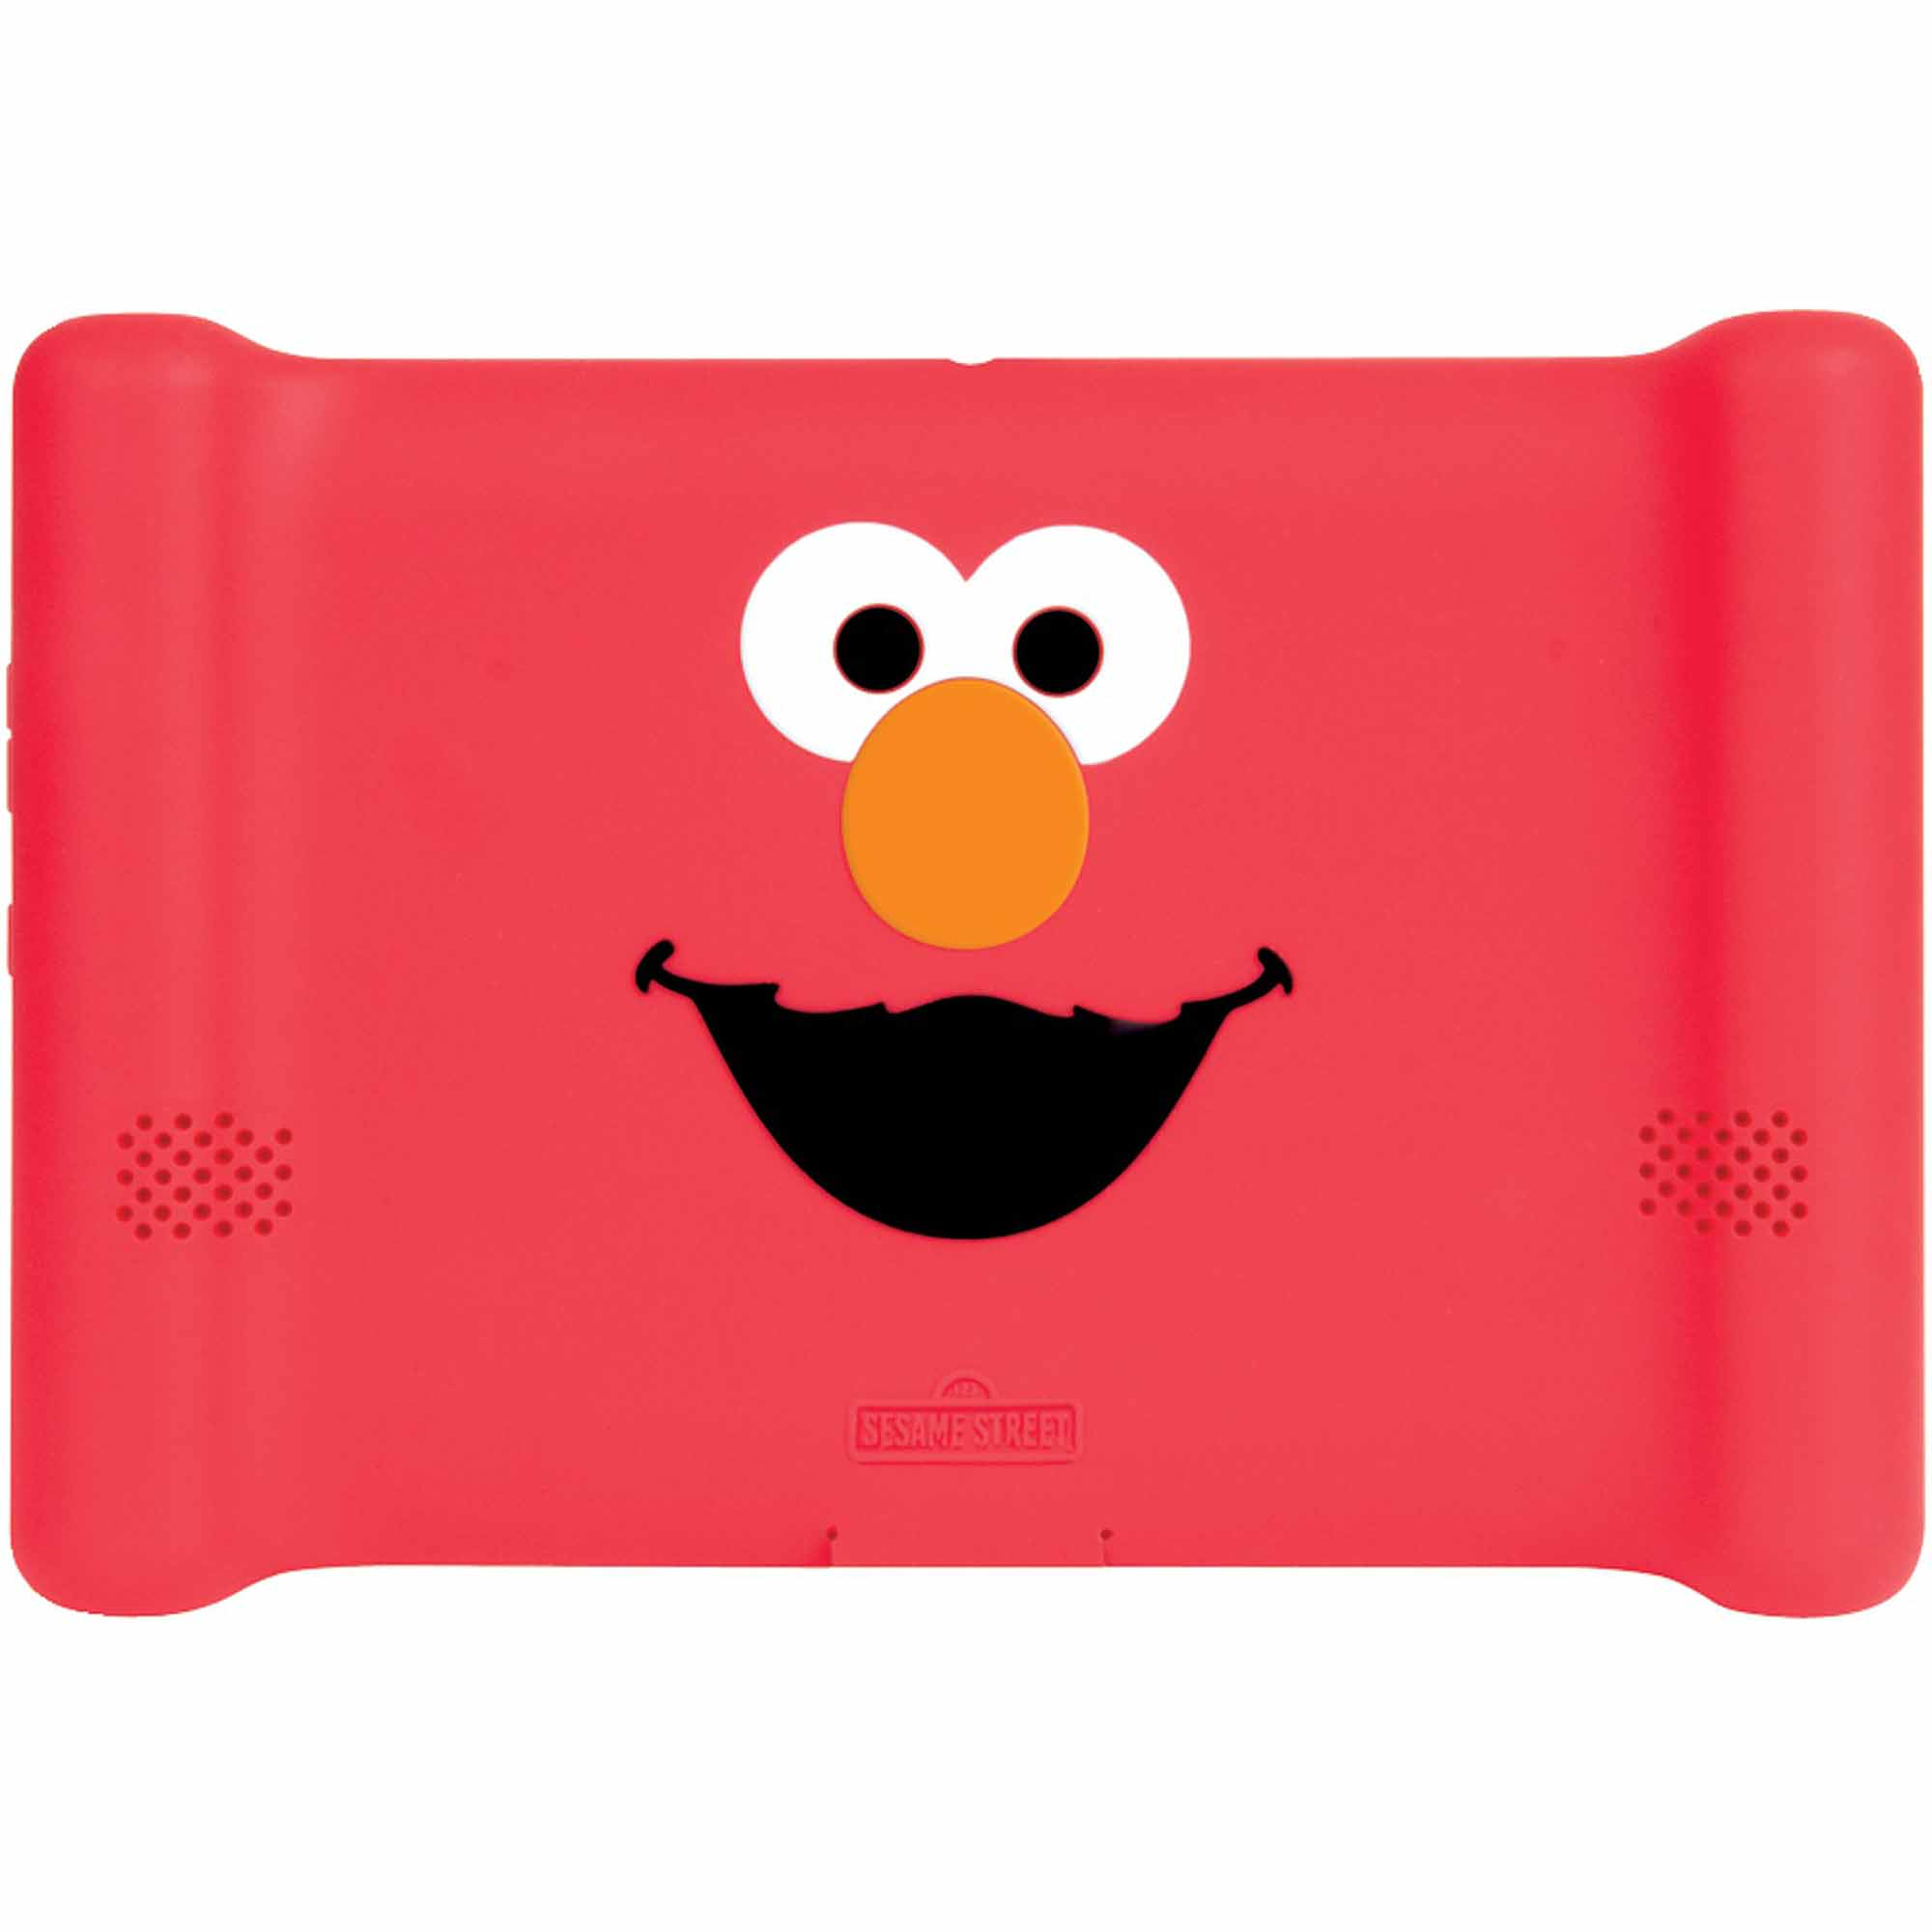 iSound ISOUND-3480 Comfort Grip Case for Kindle Fire HD, Elmo